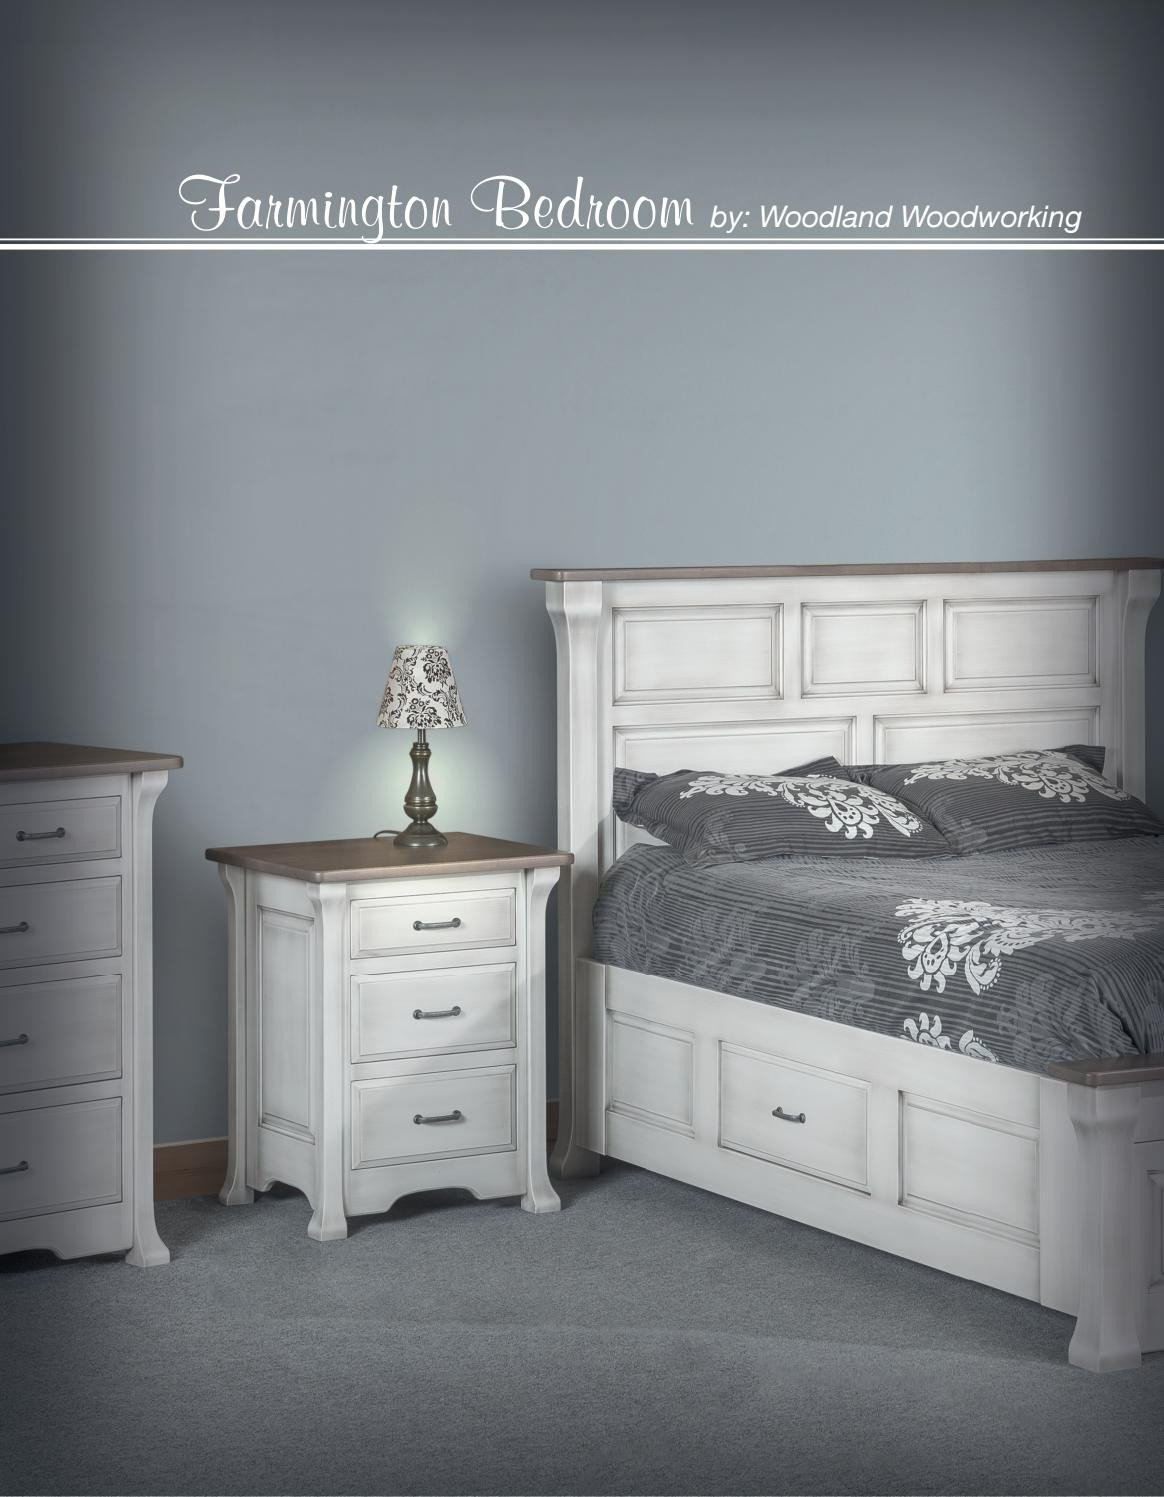 Bedroom Furniture Hardware Replacement Luxury 2018 Woodland Woodworking New Bedroom Catalog E&g Amish